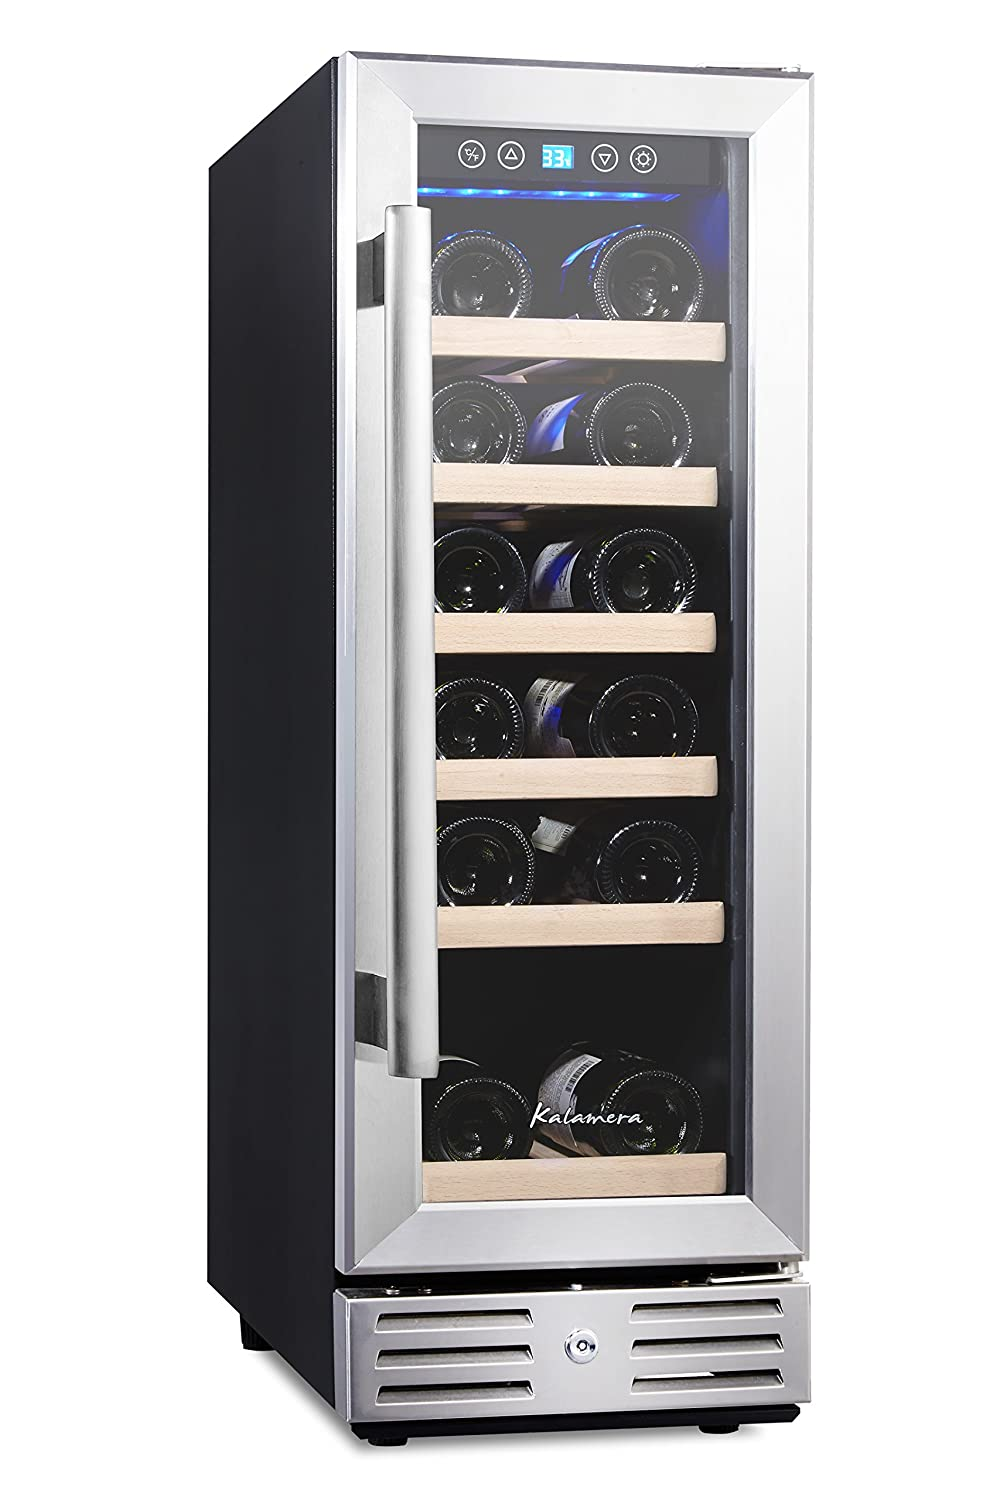 amazoncom kalamera '' wine cooler  bottle builtin or  - kalamera '' wine refrigerator  bottle builtin or freestanding with stainlesssteel  doublelayer tempered glass door and temperature memory function